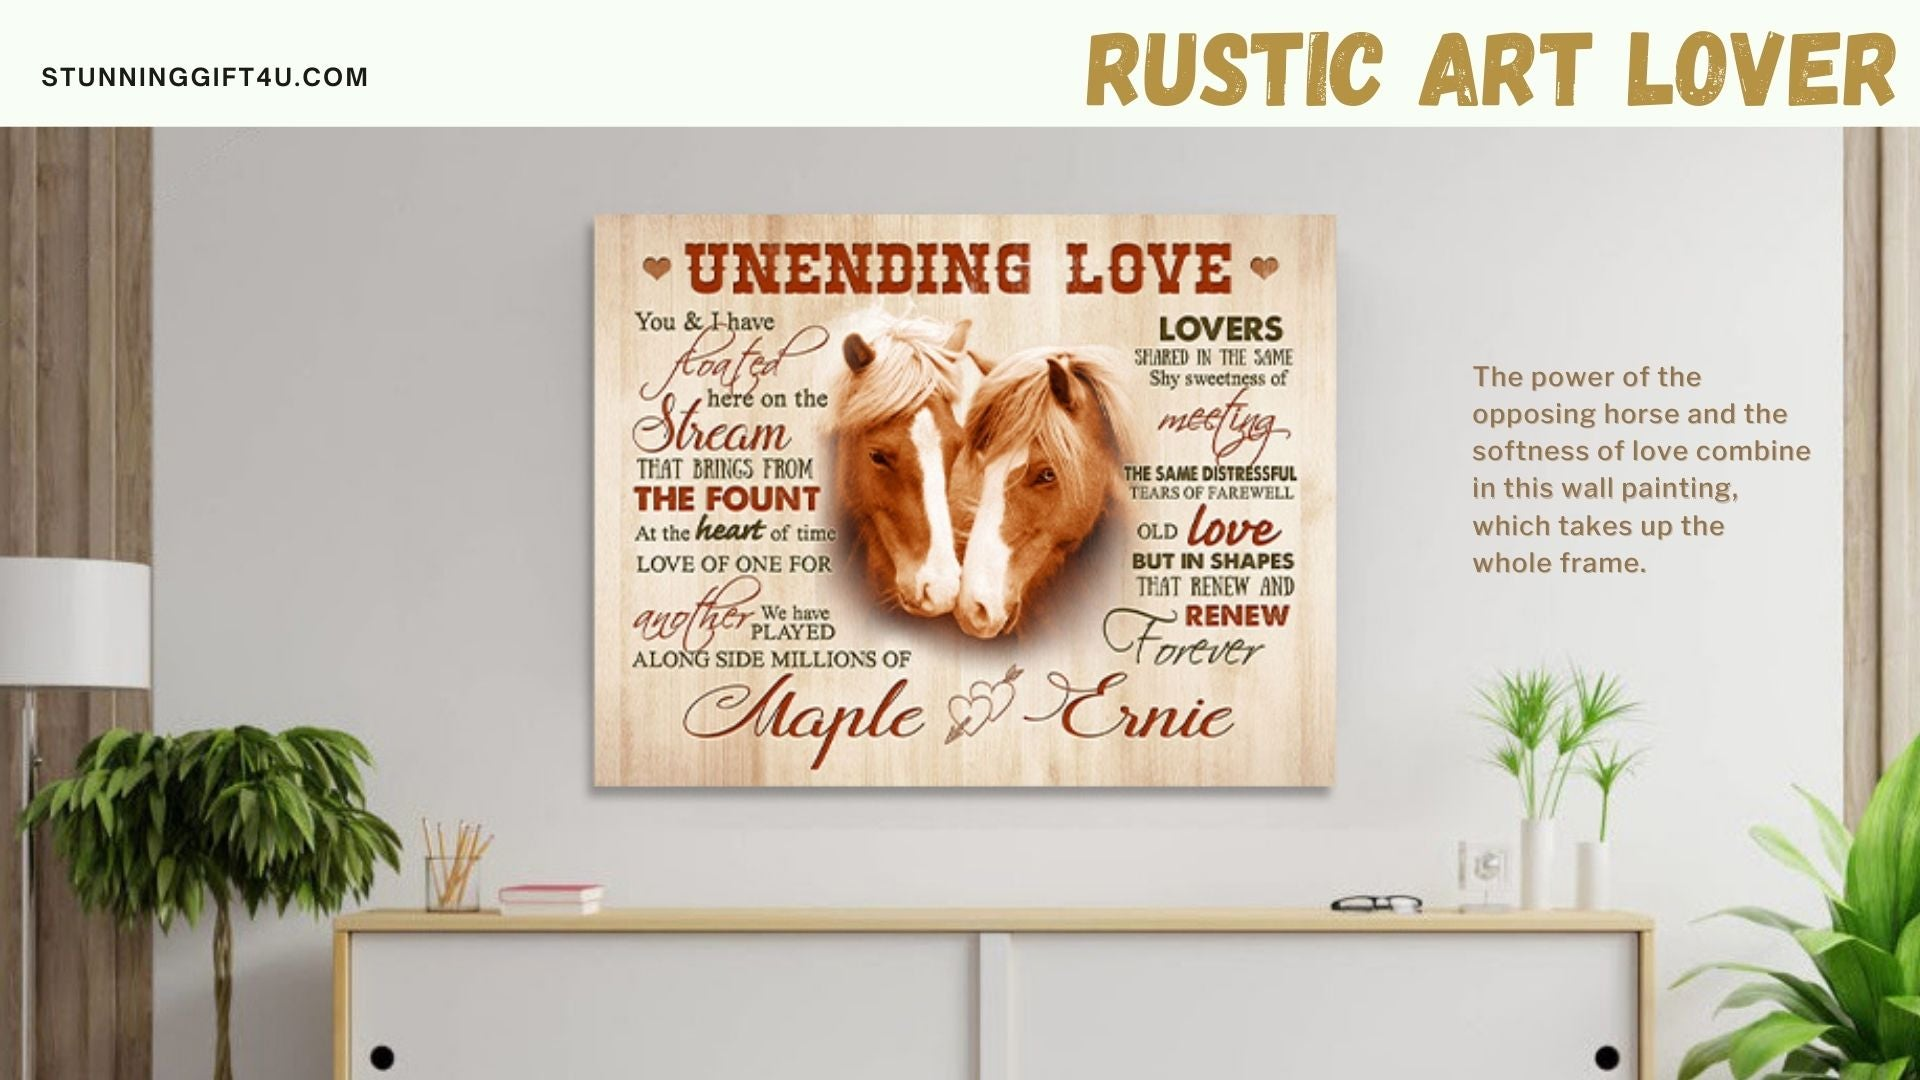 anniversary gift for him who love rustic art